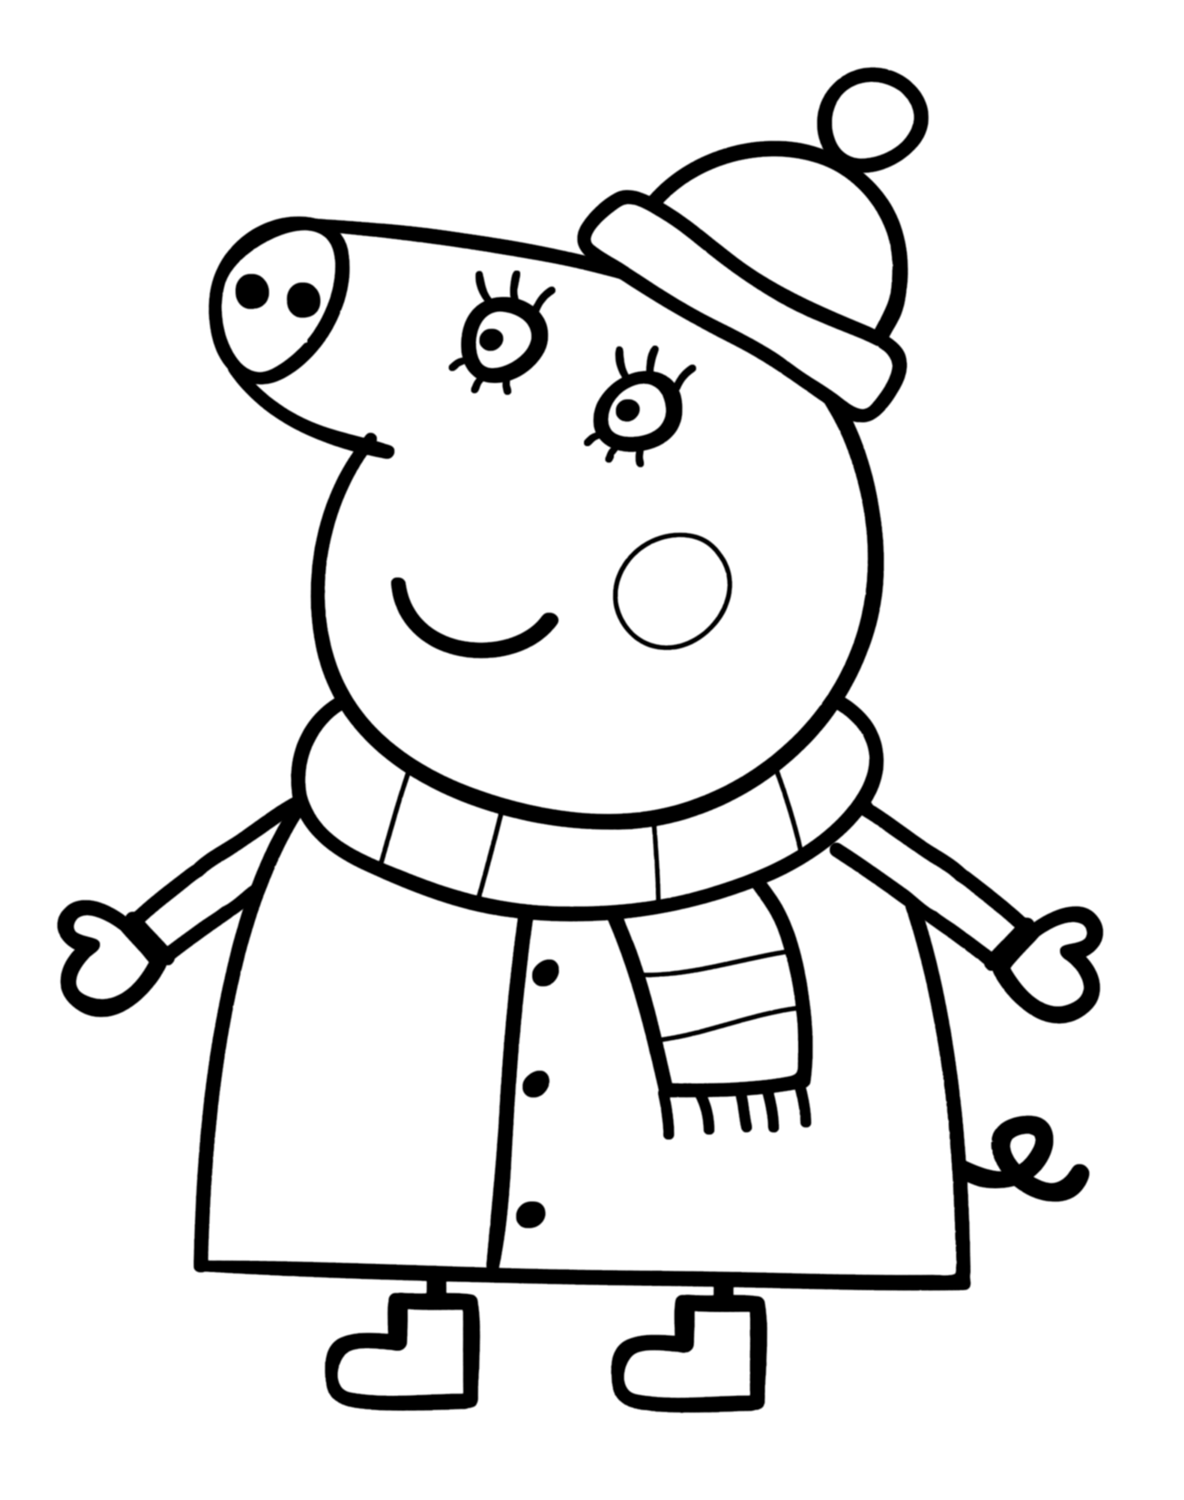 peppa pig colouring pictures to print bovenste deel kleurplaat peppa pig online krijg pictures print peppa to pig colouring